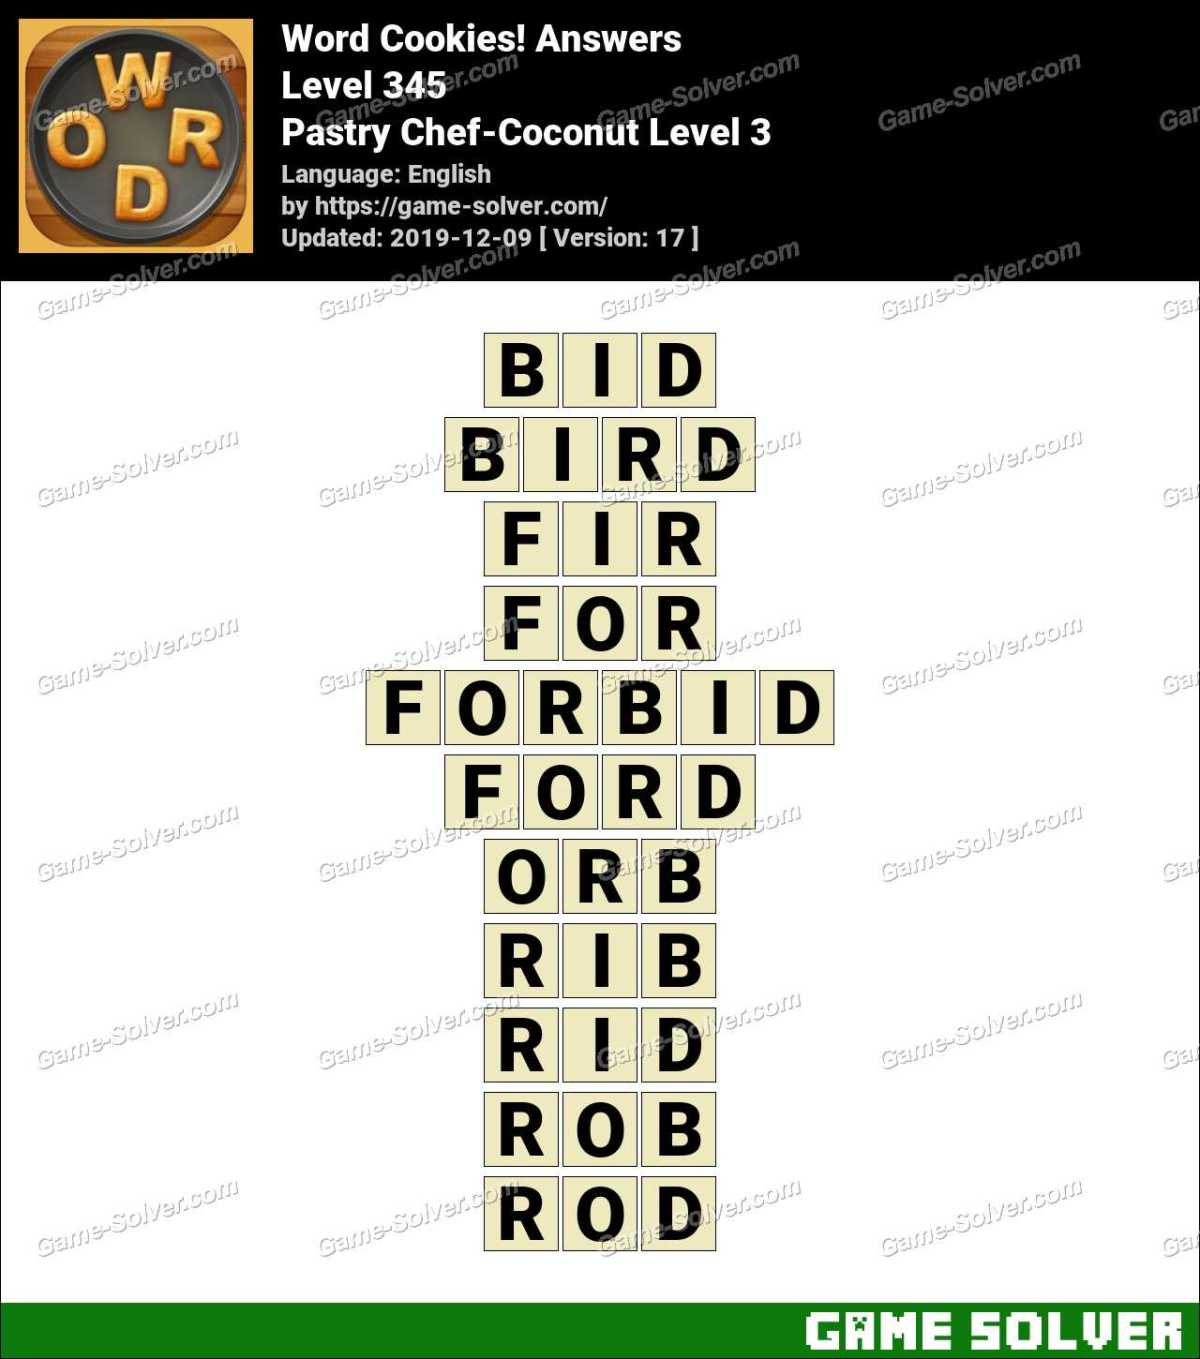 Word Cookies Pastry Chef-Coconut Level 3 Answers